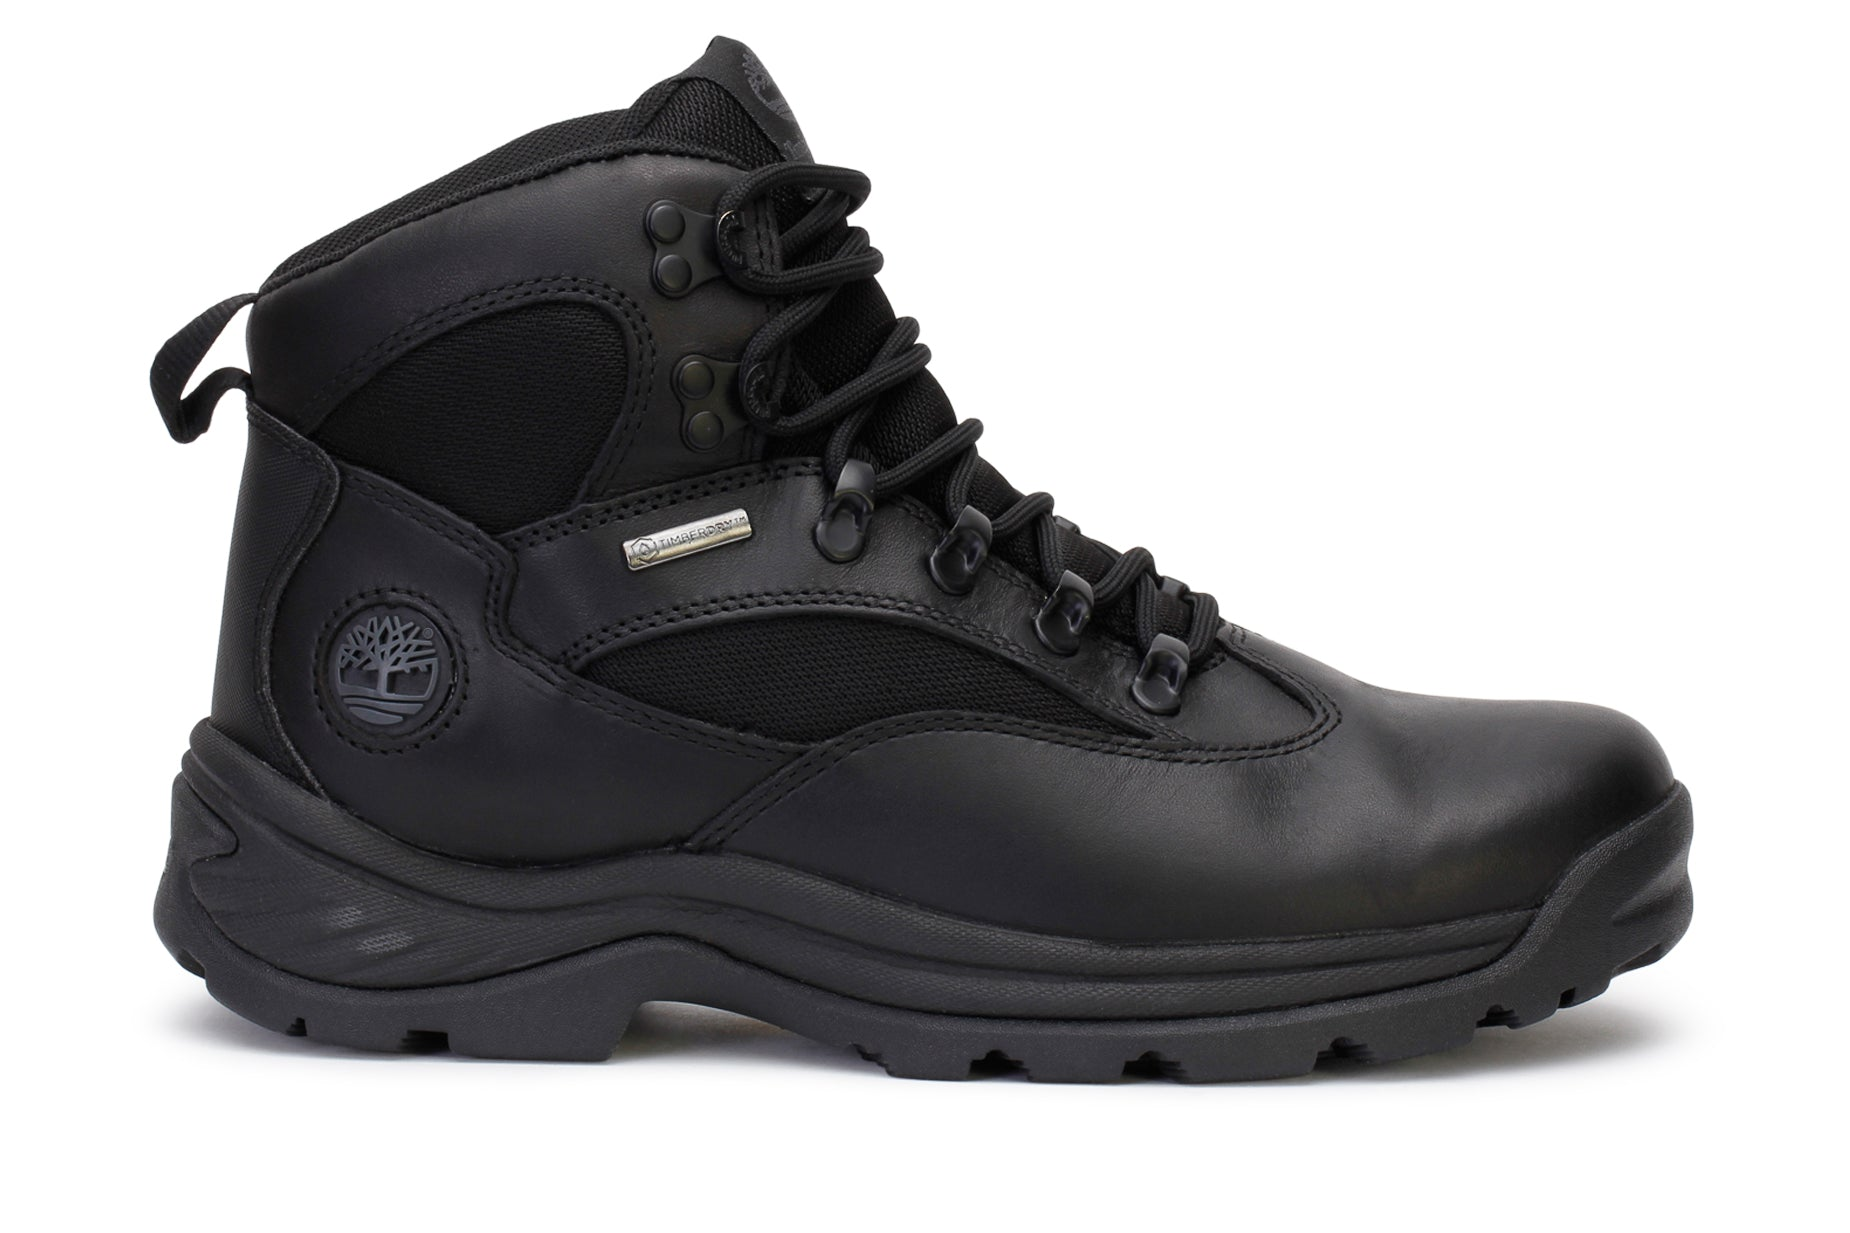 timberland-mens-chocorua-trail-mid-boots-waterproof-black-leather-18193-main